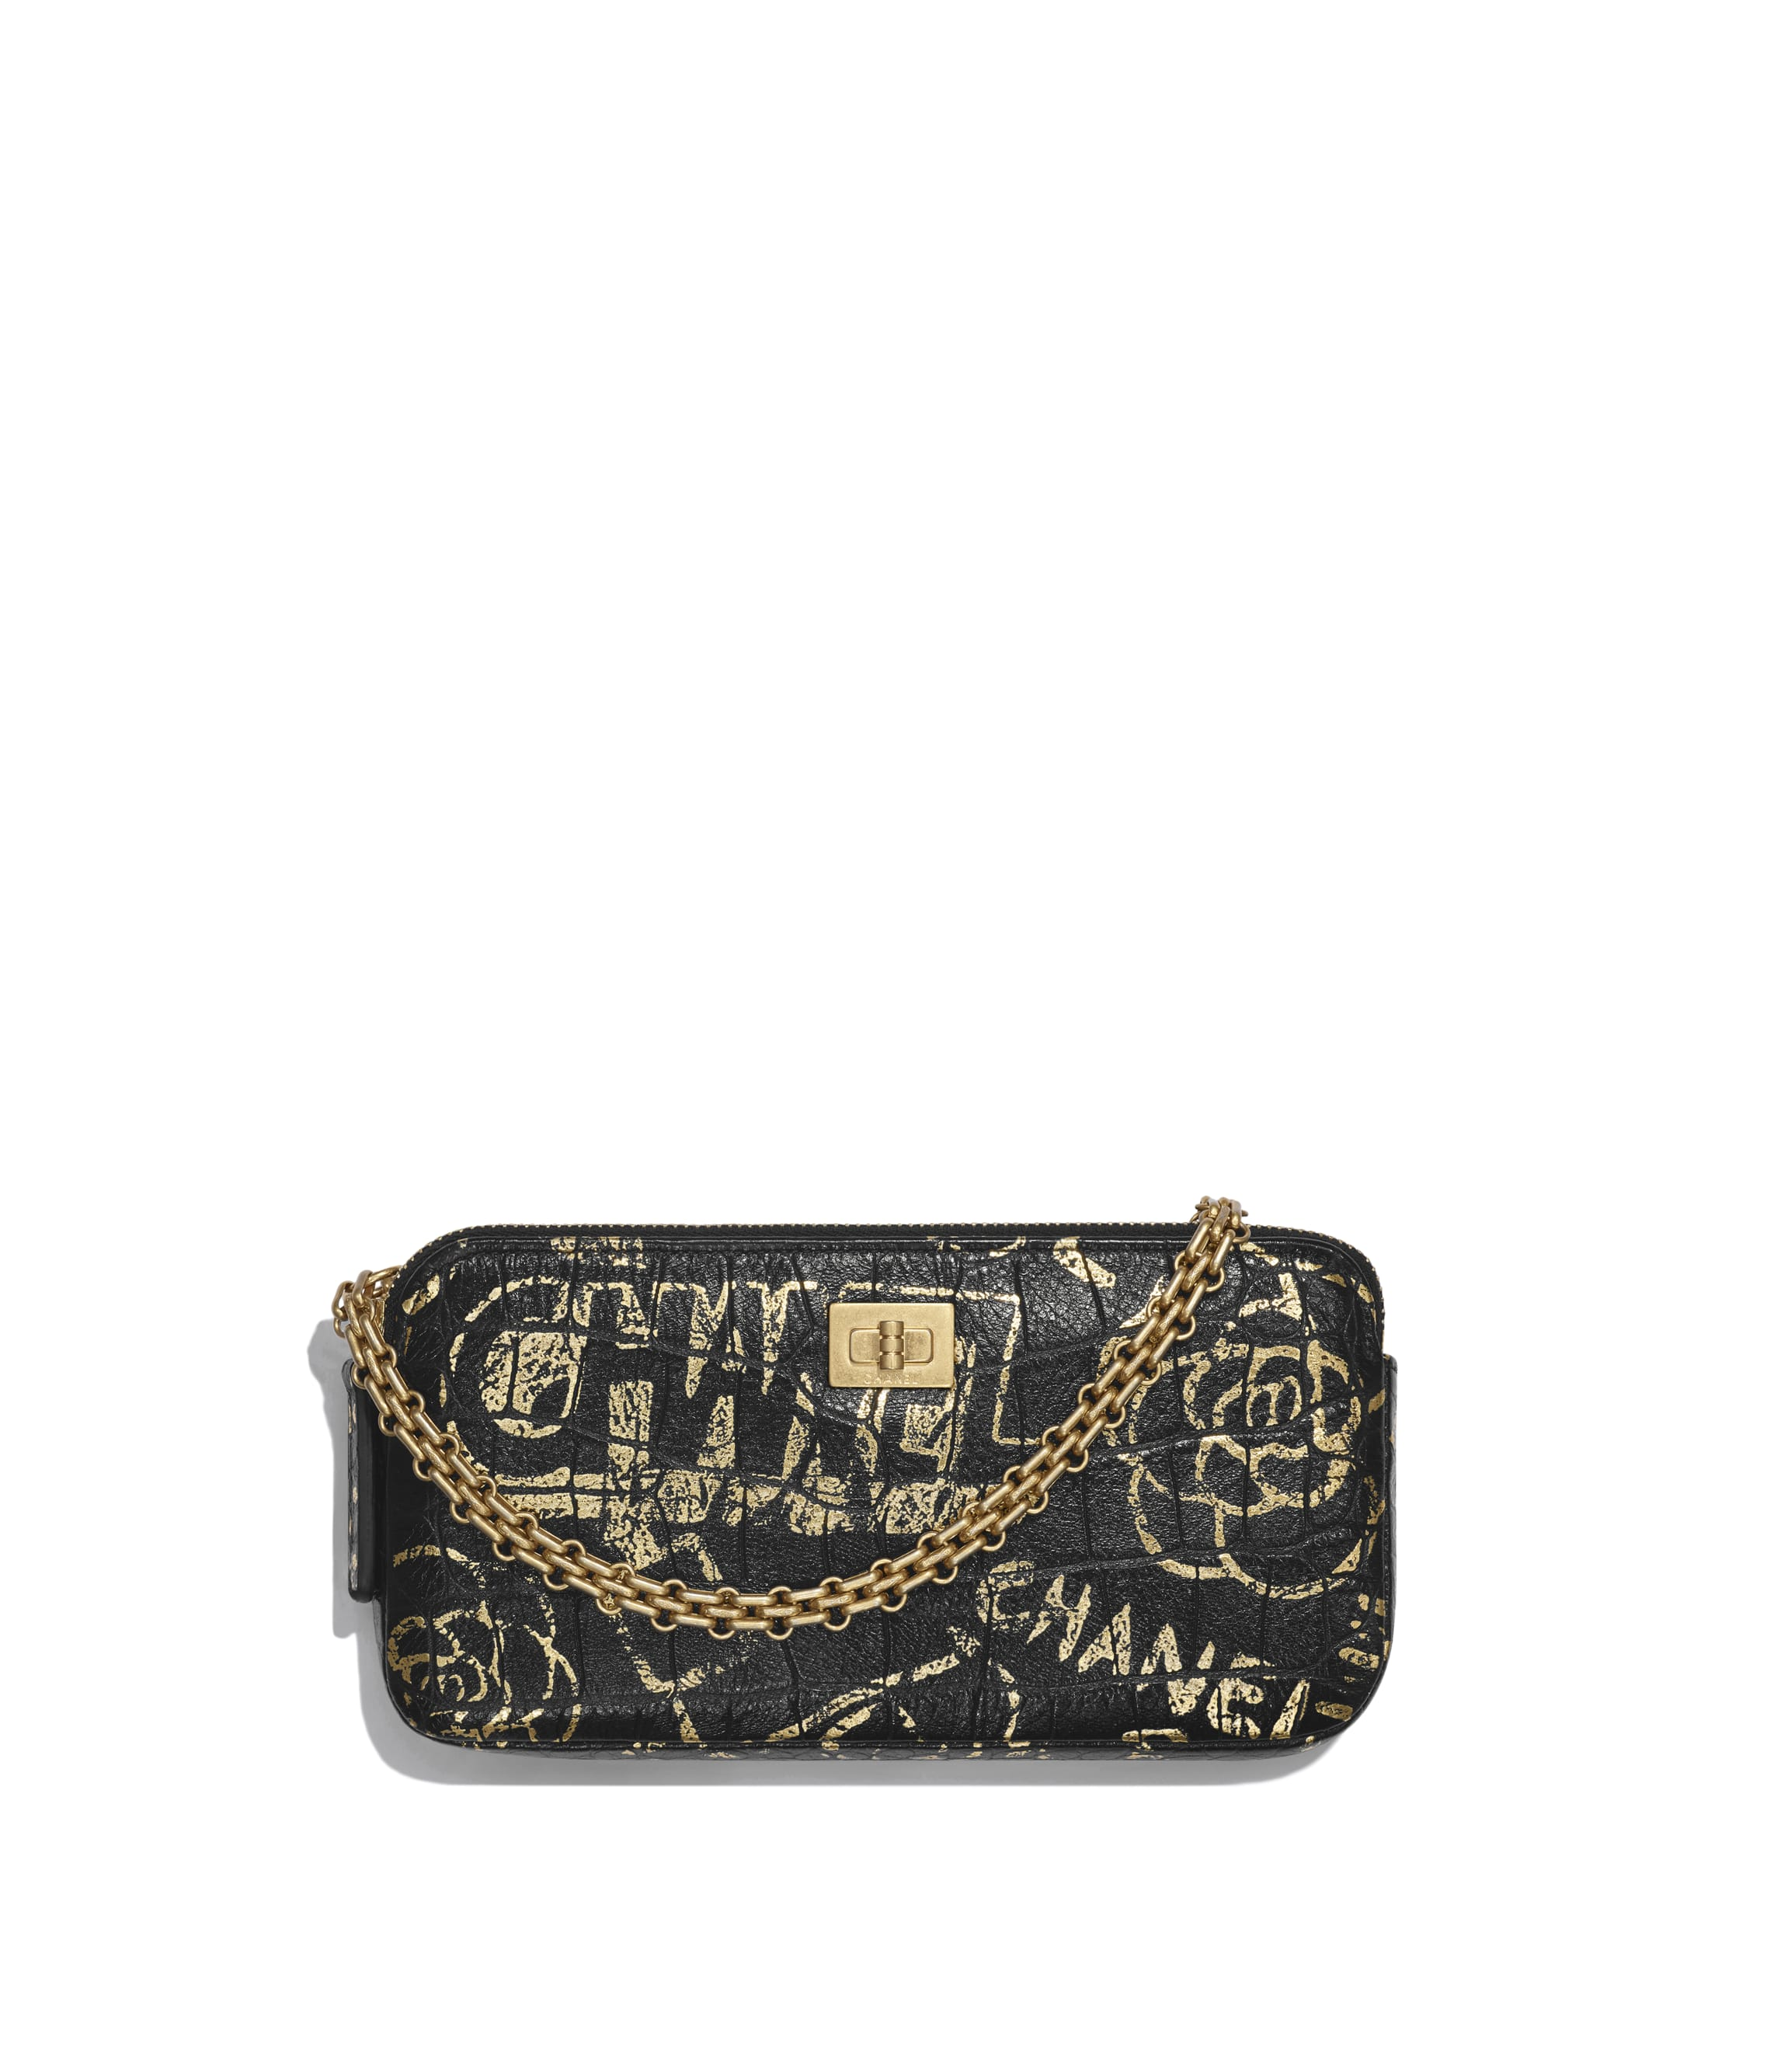 eed71157e318cd Clutches with Chain - Small Leather Goods - CHANEL